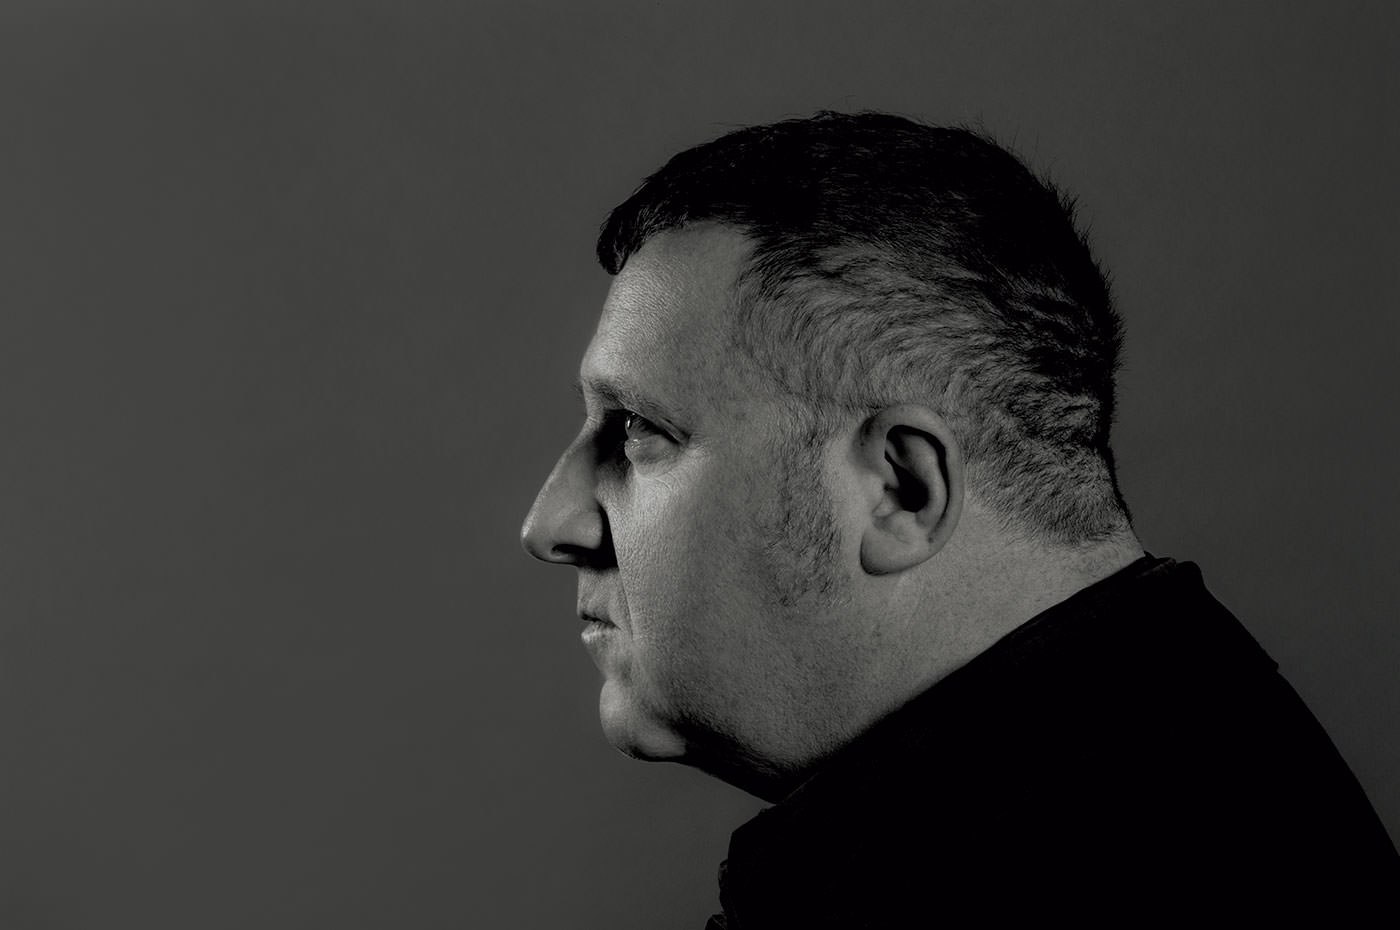 BEST OF 2015: Alber Elbaz leaves the artistic direction of Lanvin